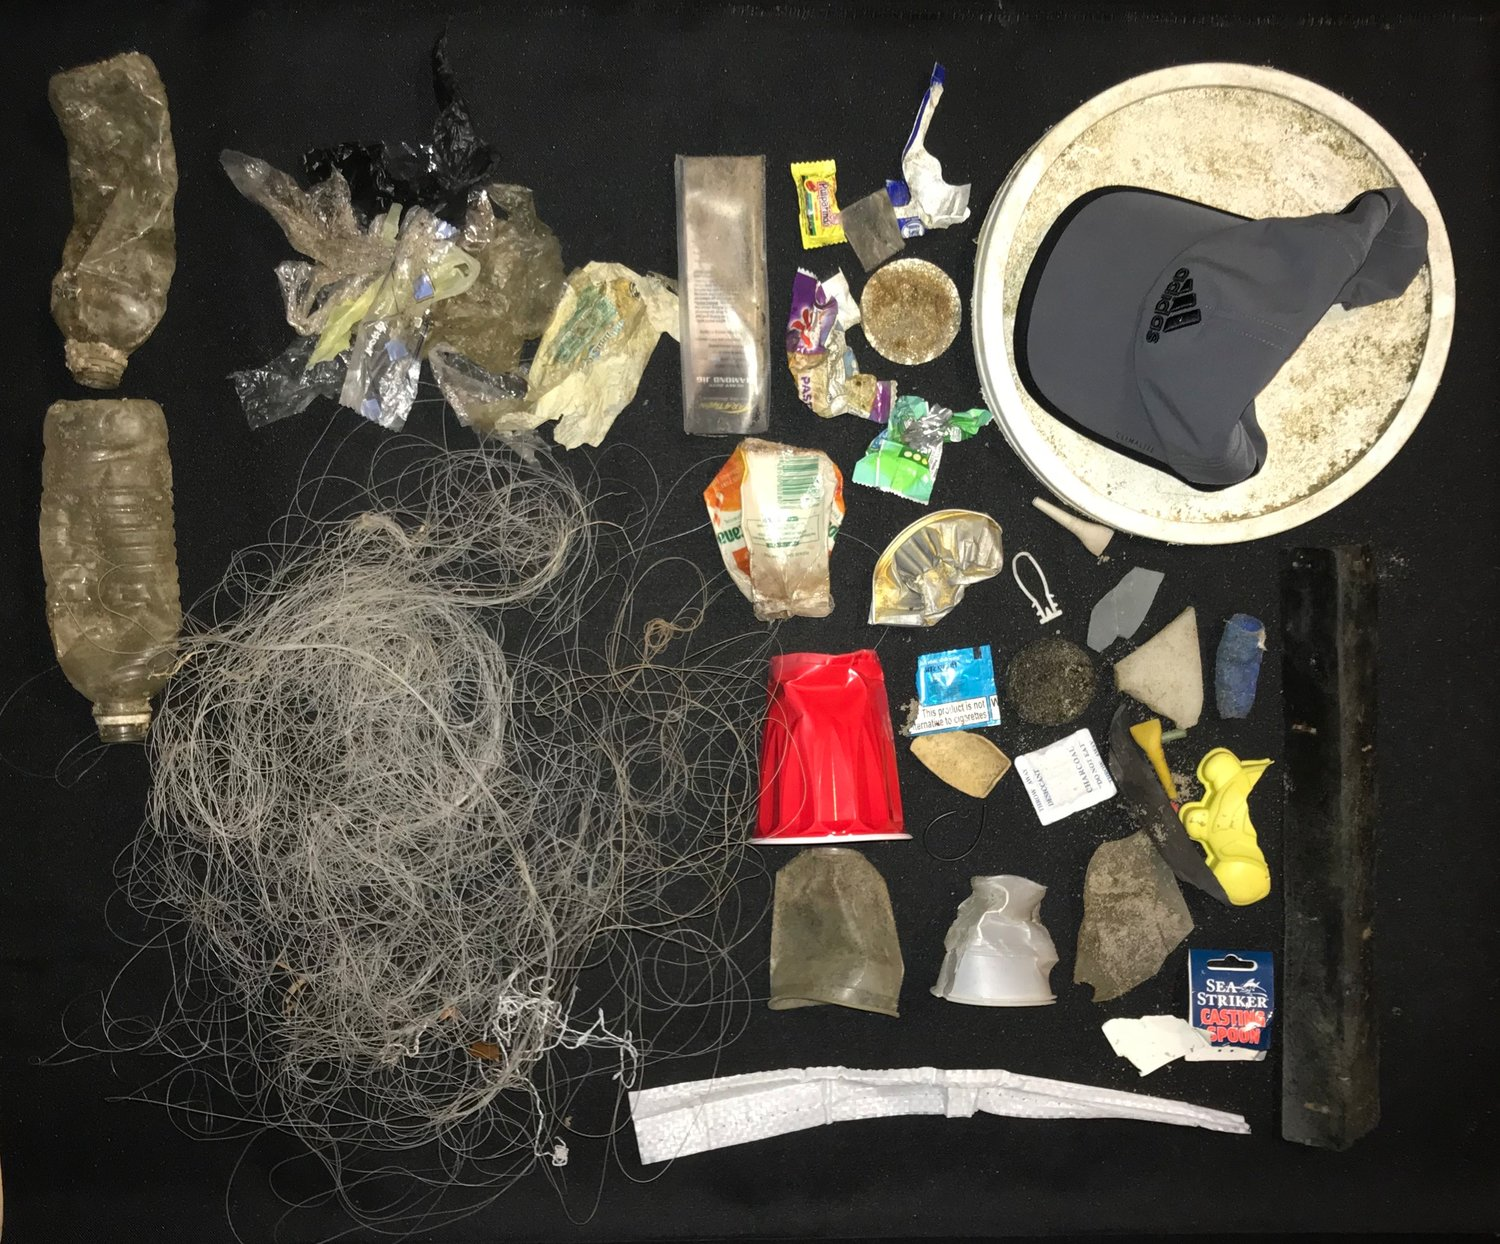 Some of Jacqueline LeDuc's finds duri9ng her trash pick up on Jones Beach included fishing line and even a practically new Adidas hat.